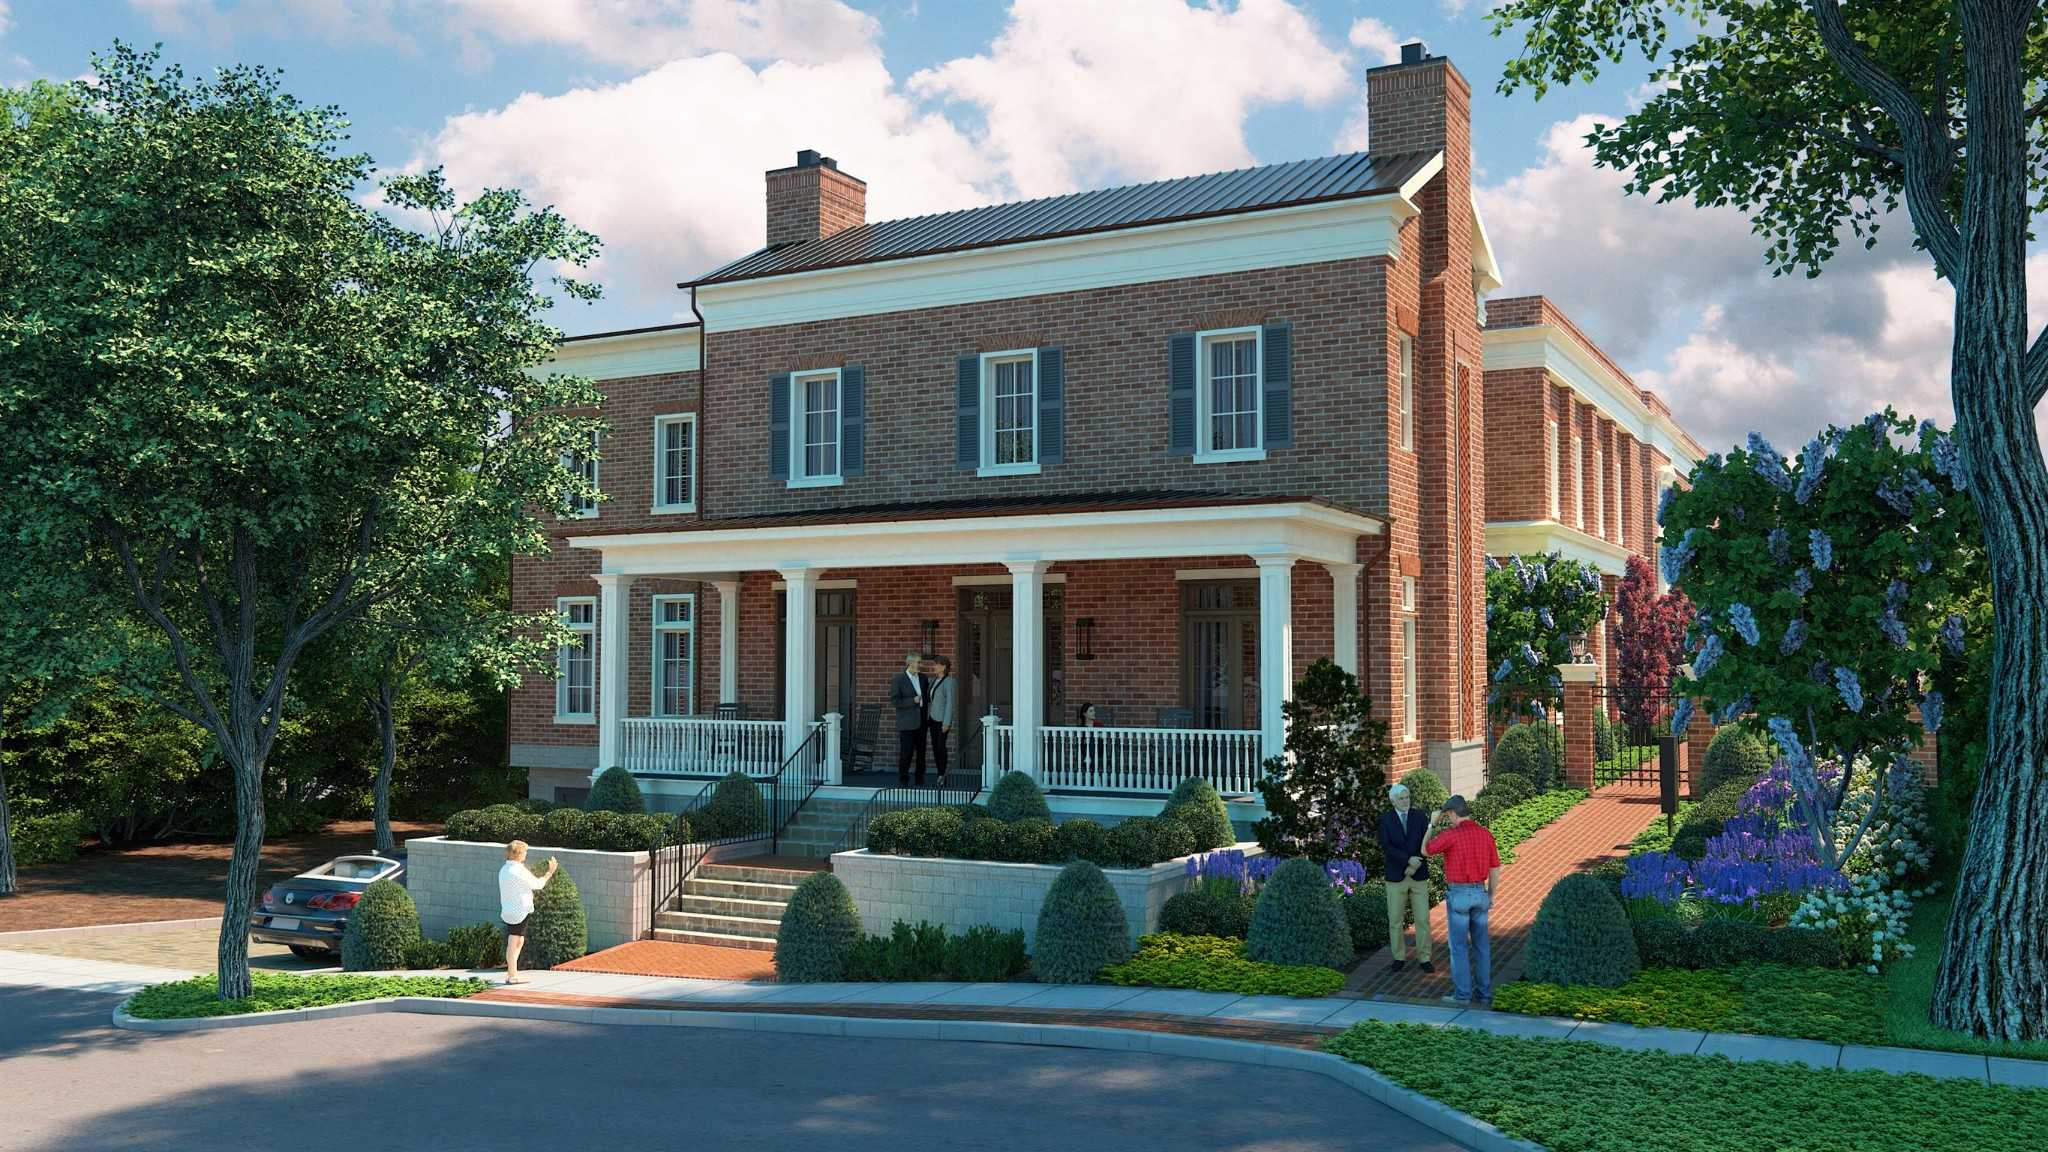 $2,446,000 - 2Br/2Ba -  for Sale in The Arlington At West Main, Franklin